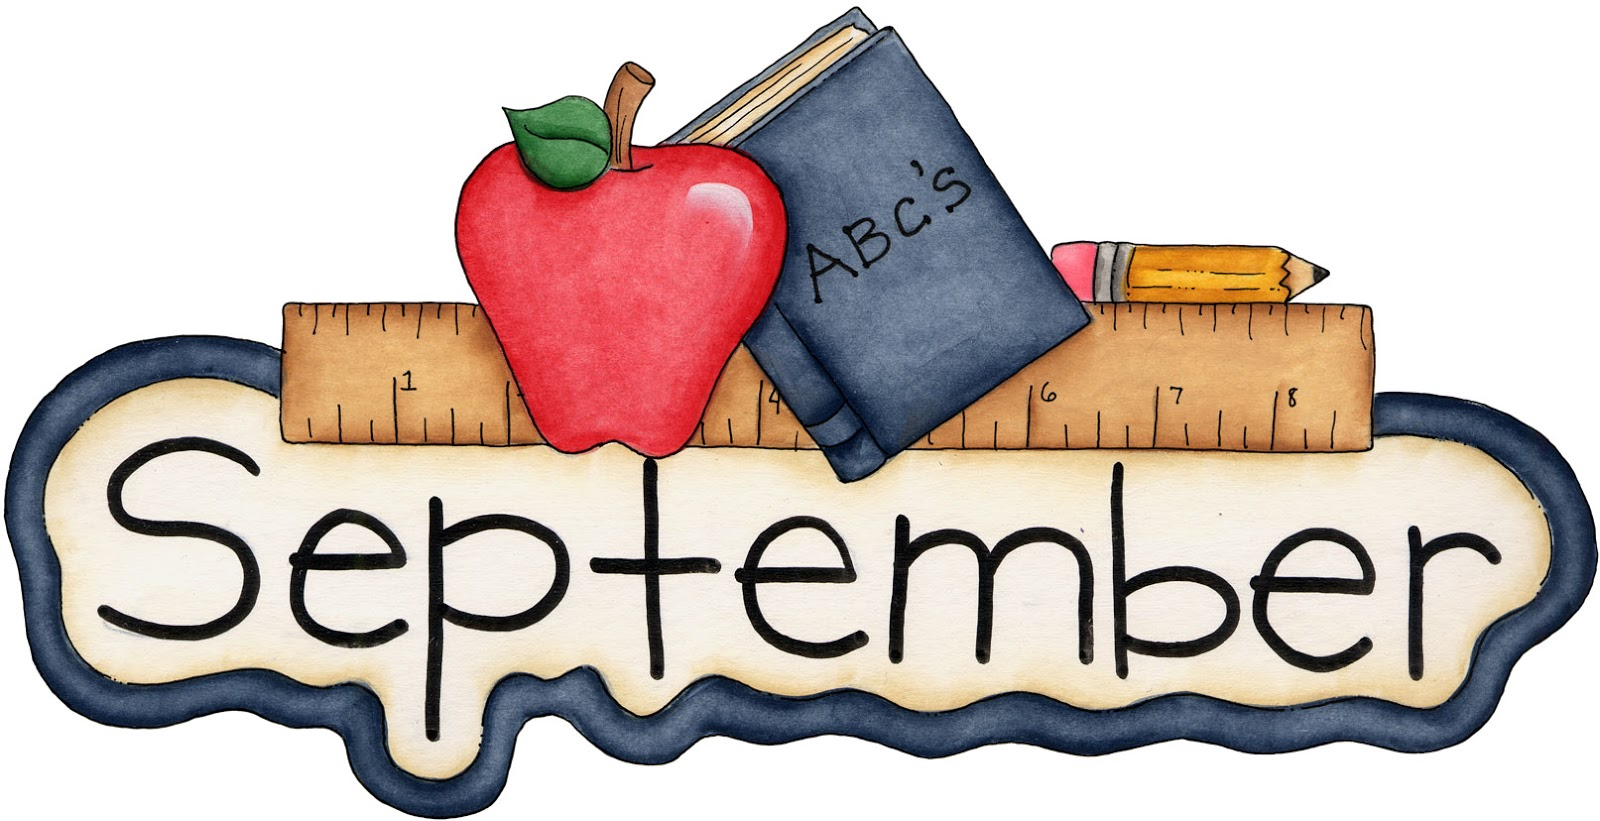 Month Of September Clip Art month of september clipart - clipart kid